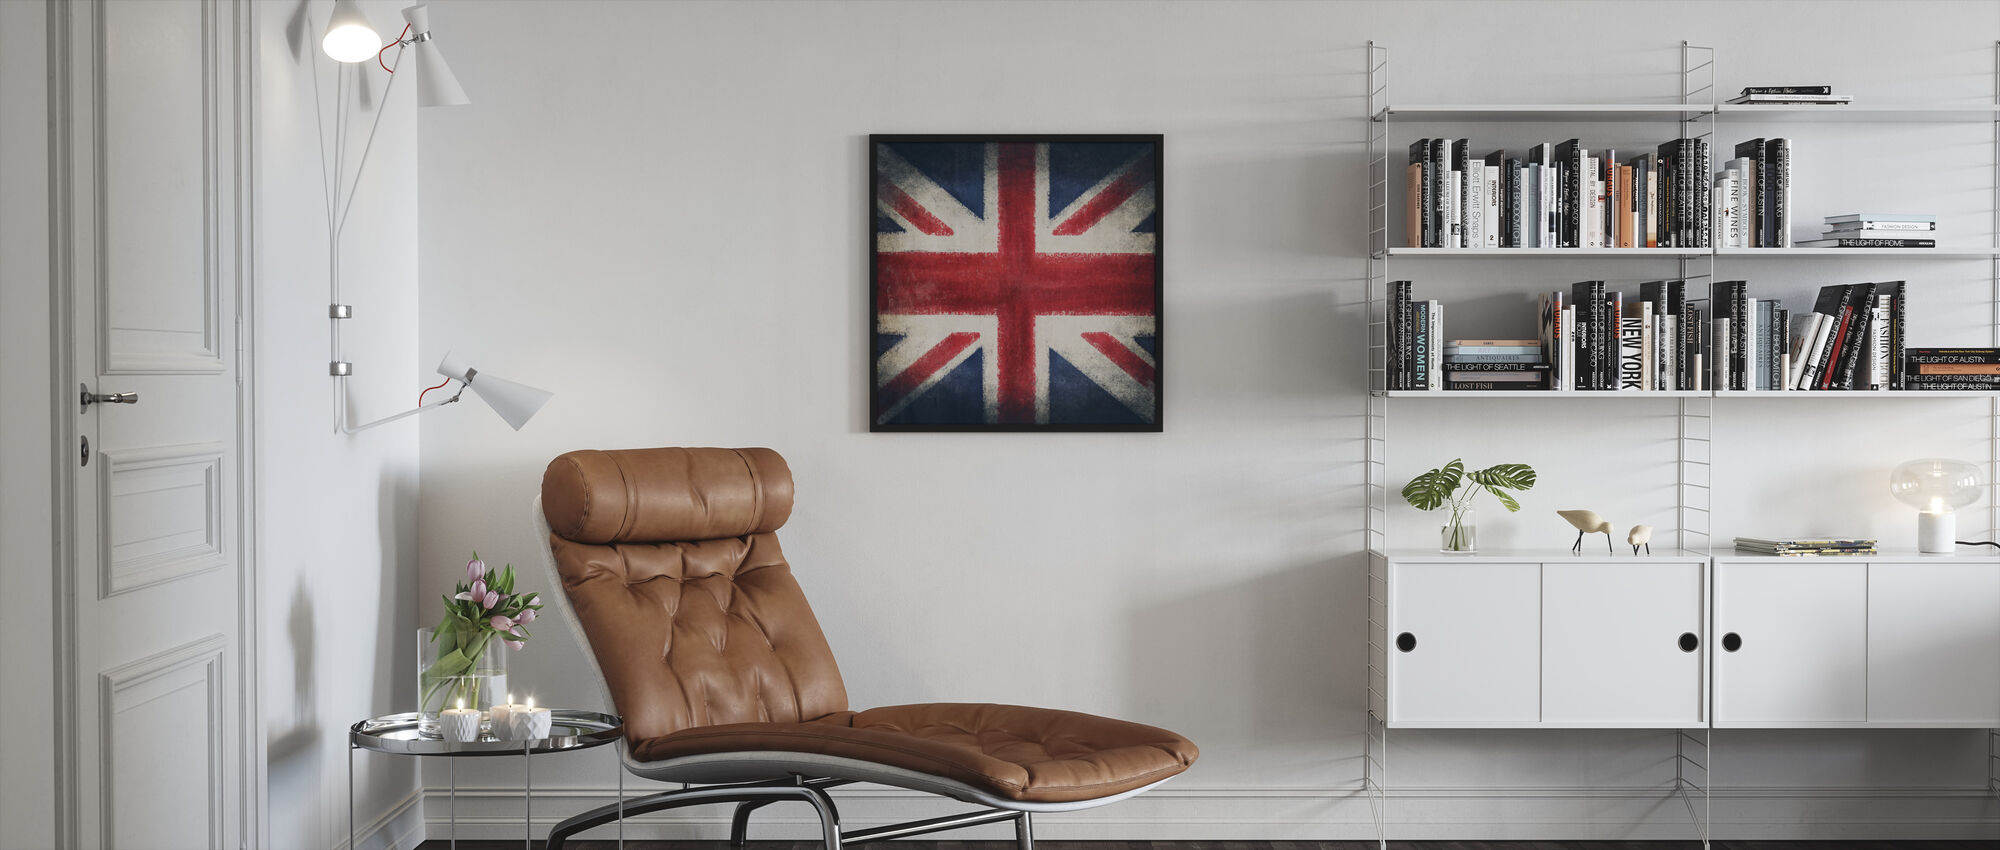 Retro Flag - Framed print - Living Room